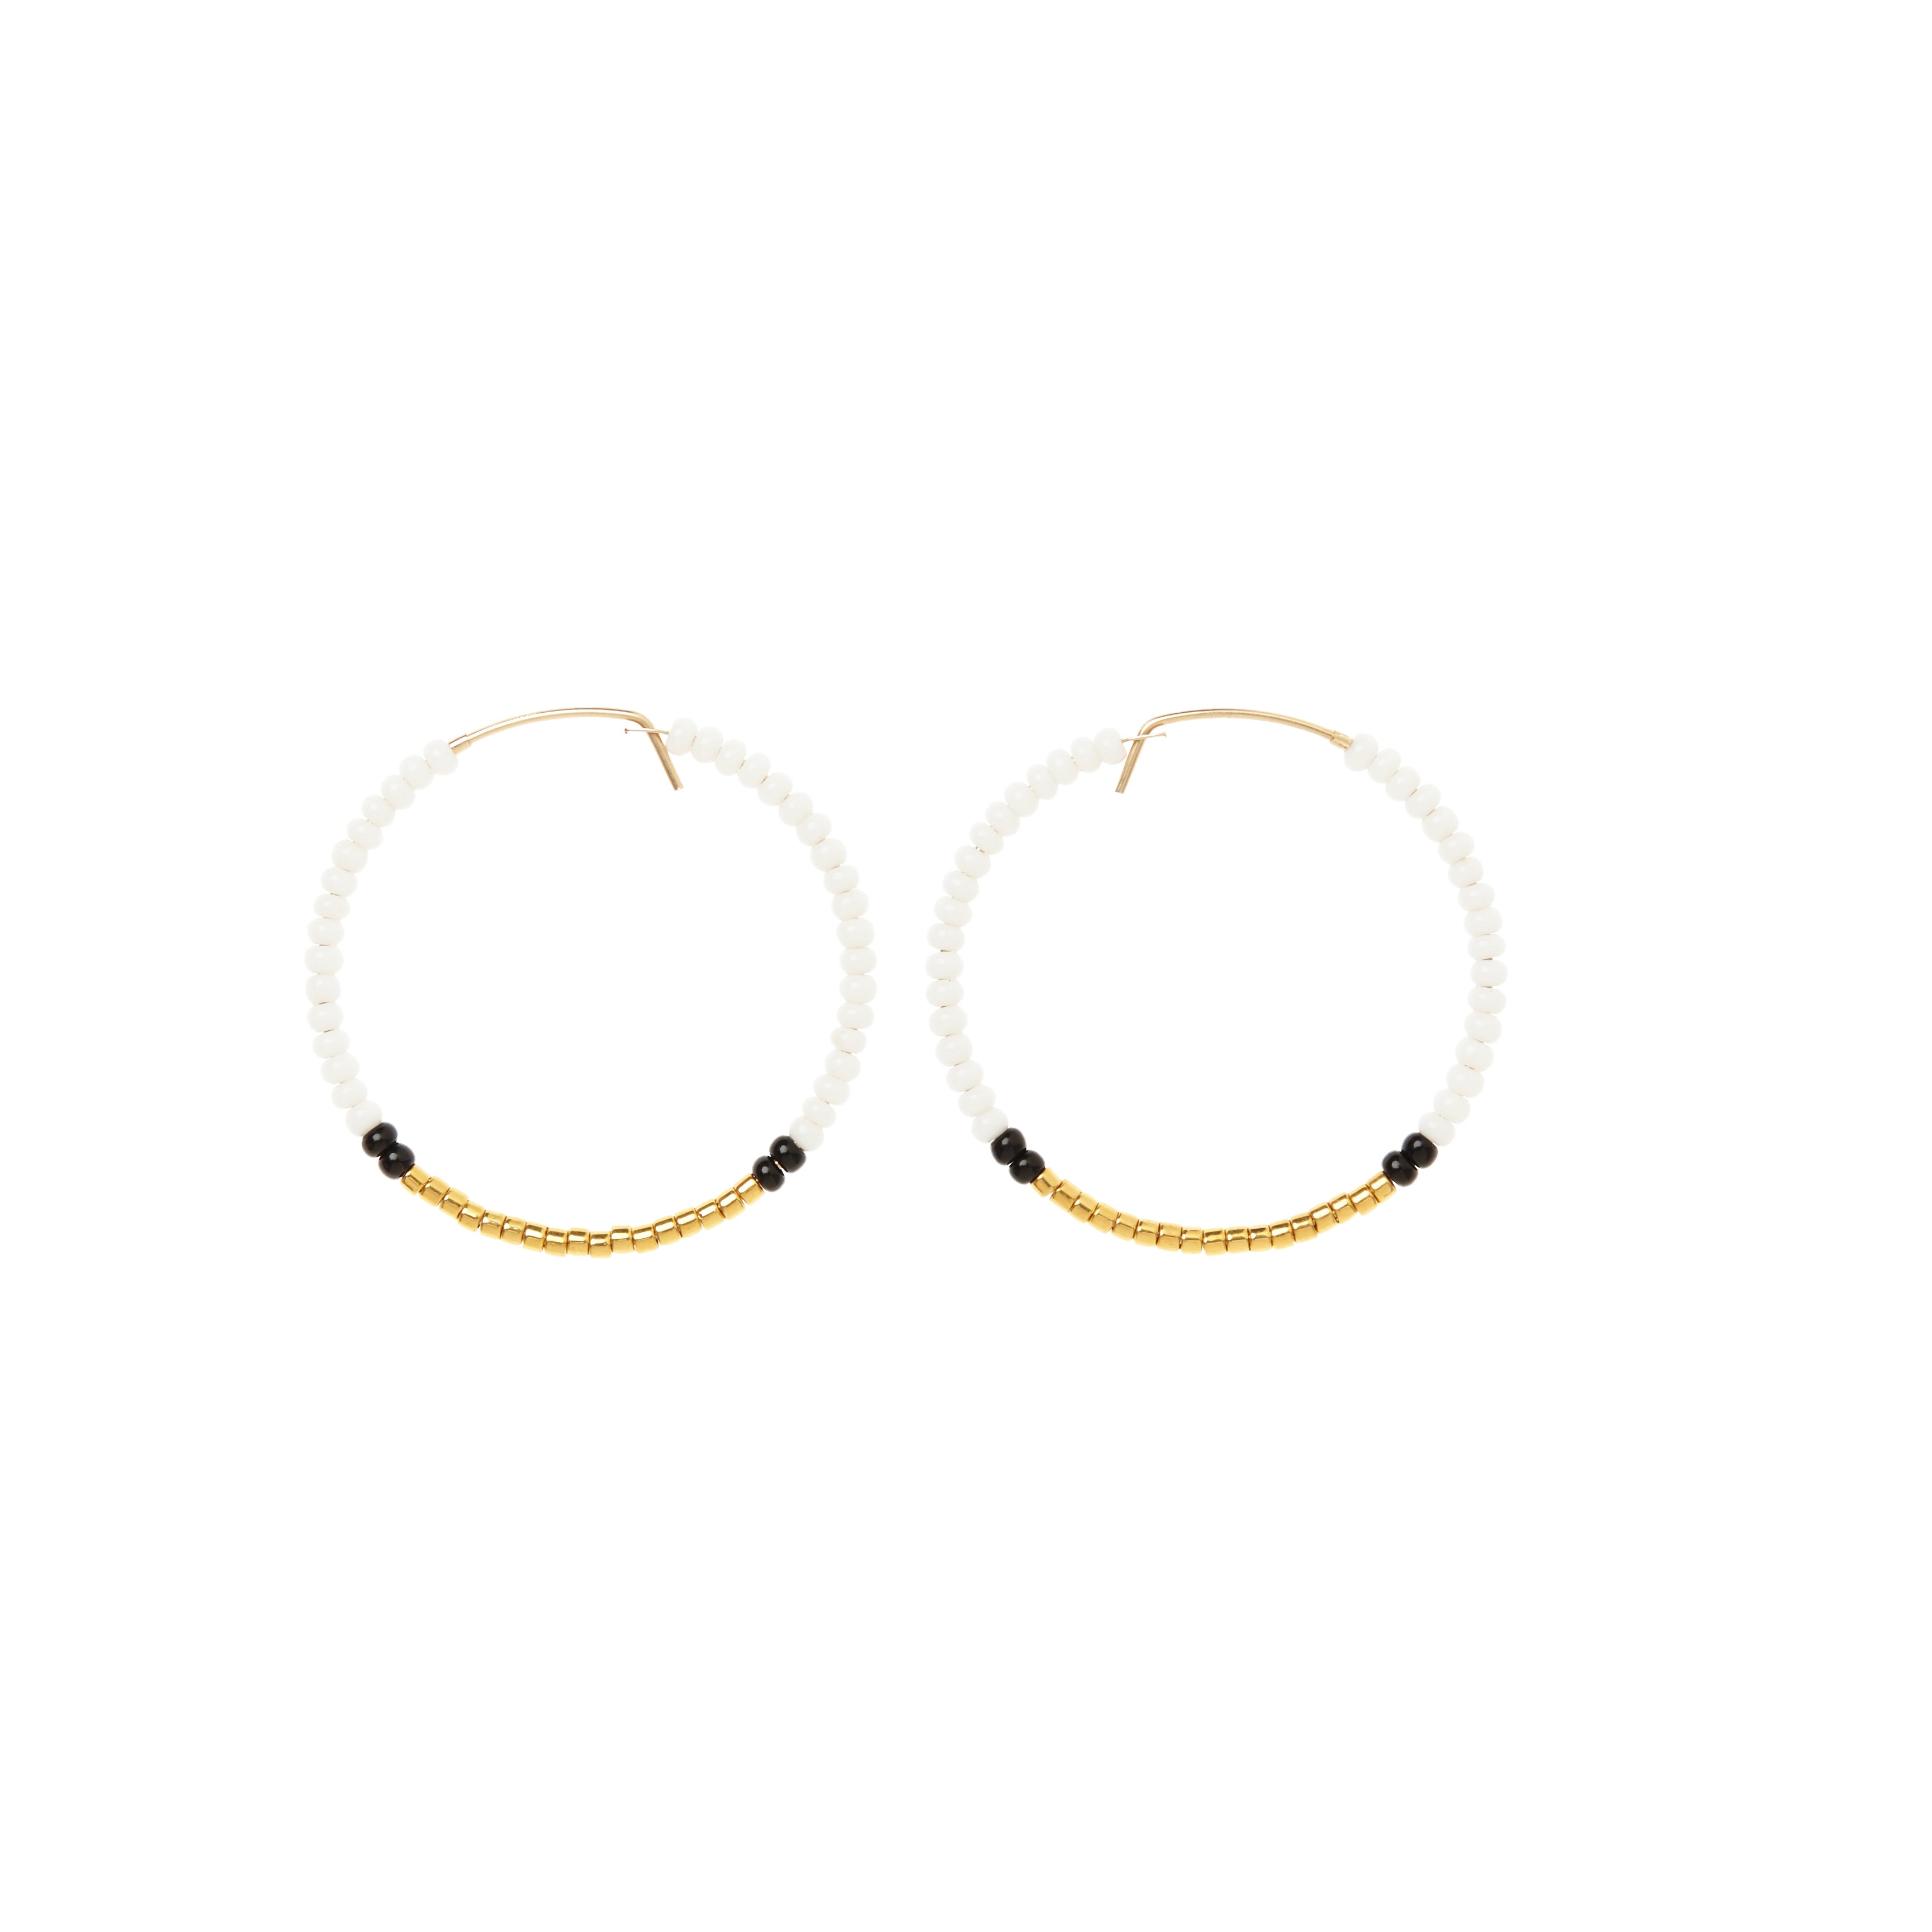 Endito Collection Small Hoop Earrings